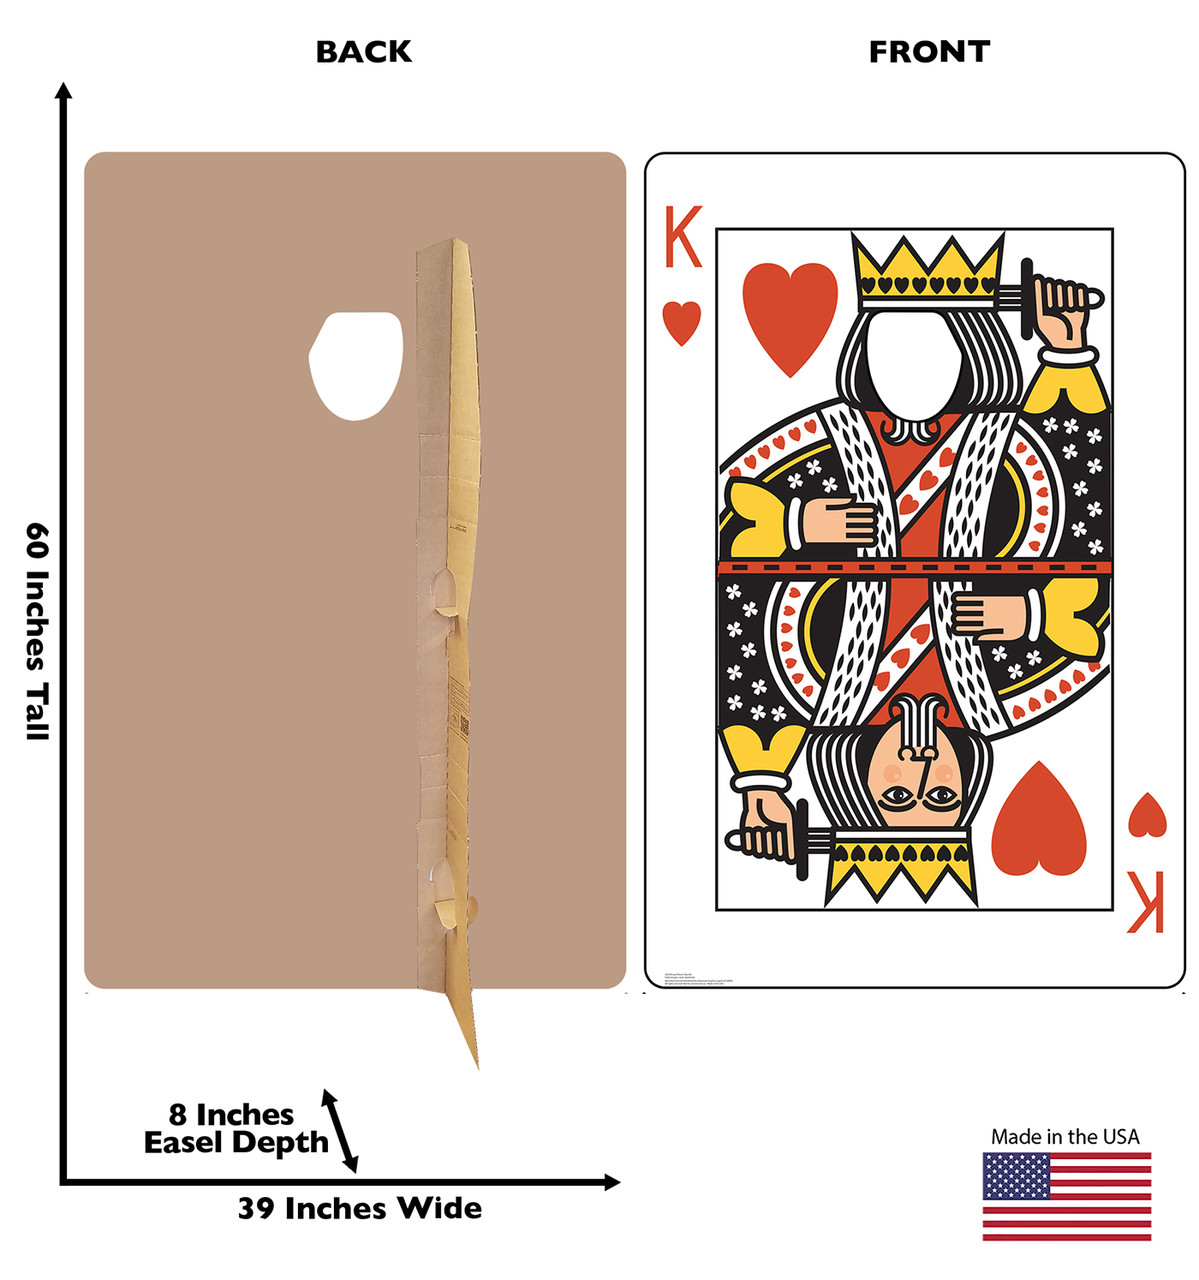 Life-size cardboard standee of the King of Hearts Card standin with back and front dimensions.